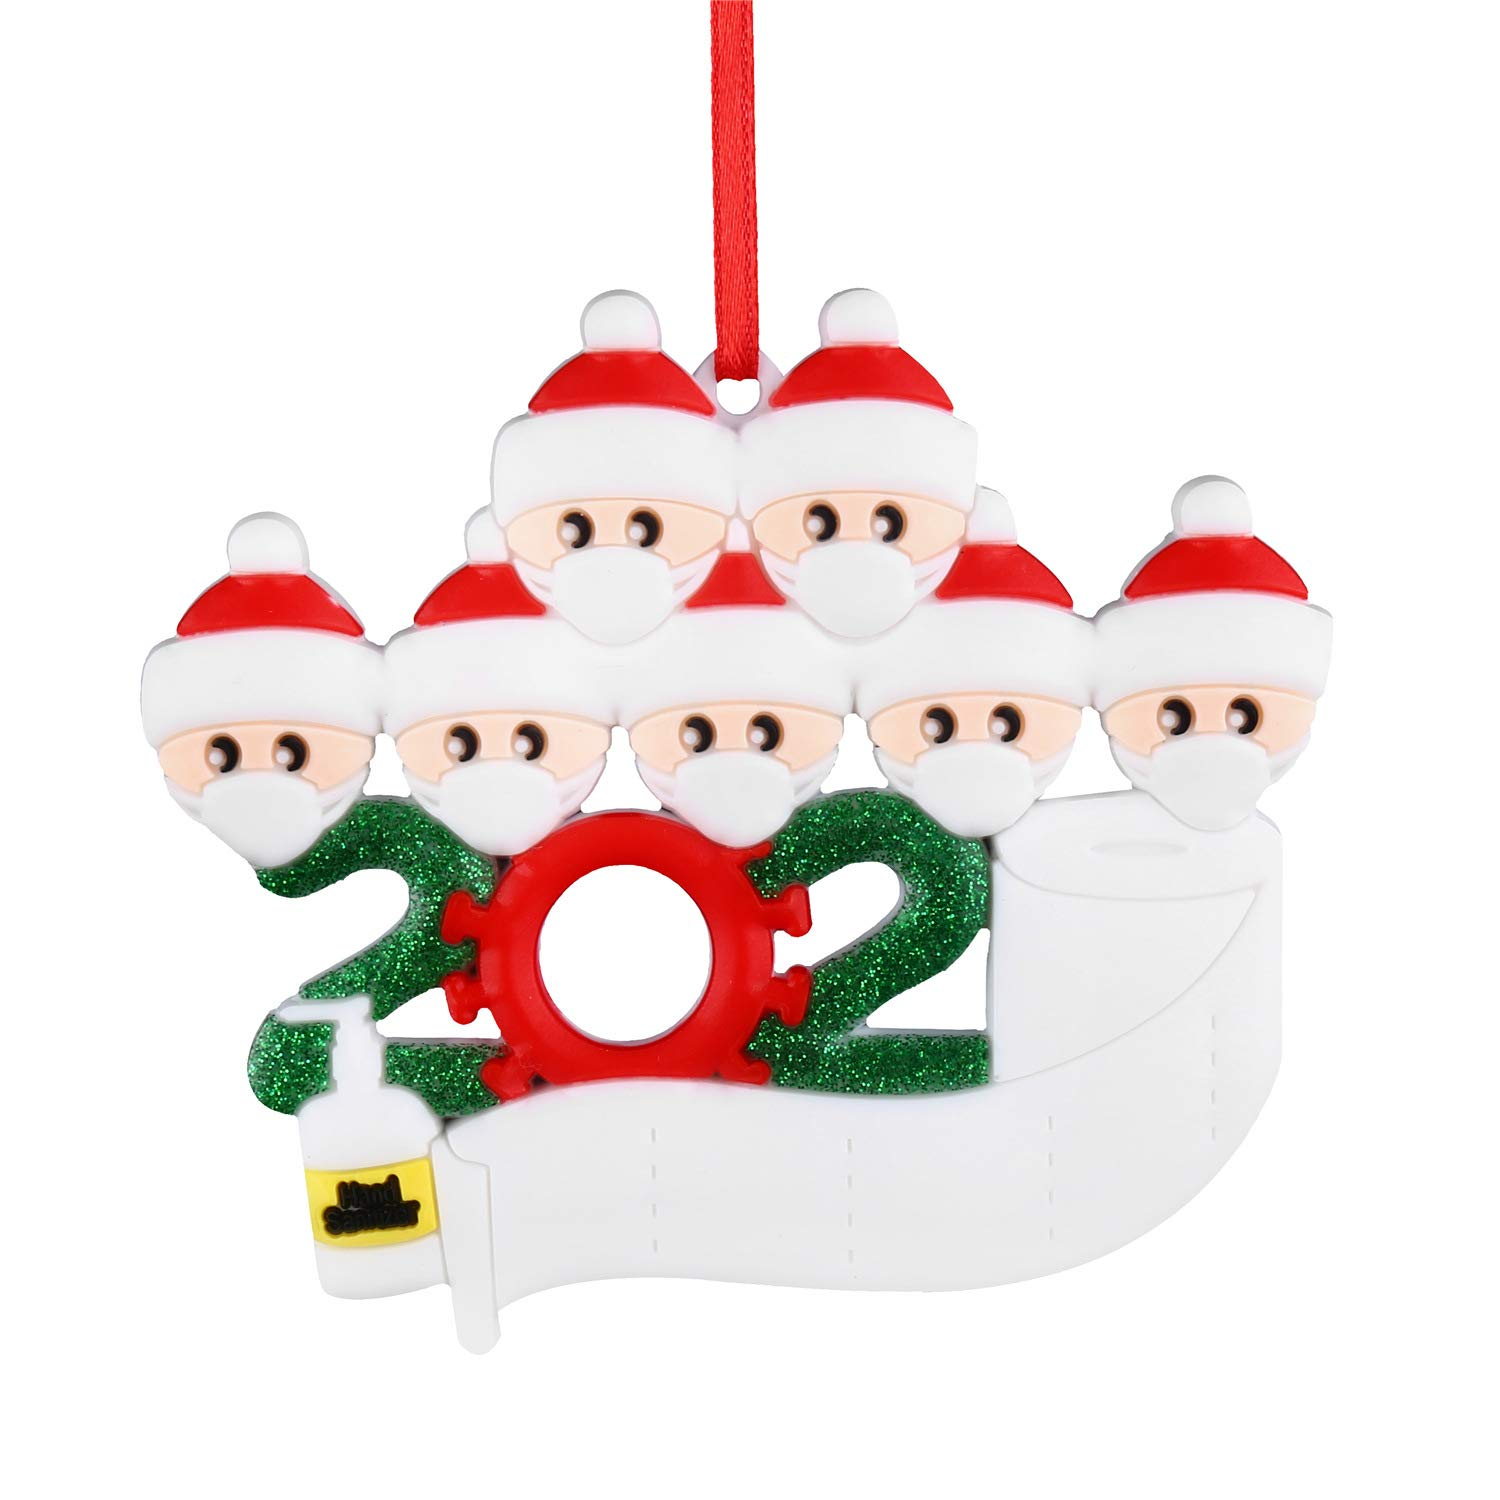 Special 2021 Holiday Christmas Ornaments Buy Eseres Quarantine Family 2021 New Year Christmas Ornament Family Members Personalized Xmas Decor Gifts Six Family Members Online At Low Prices In India Amazon In